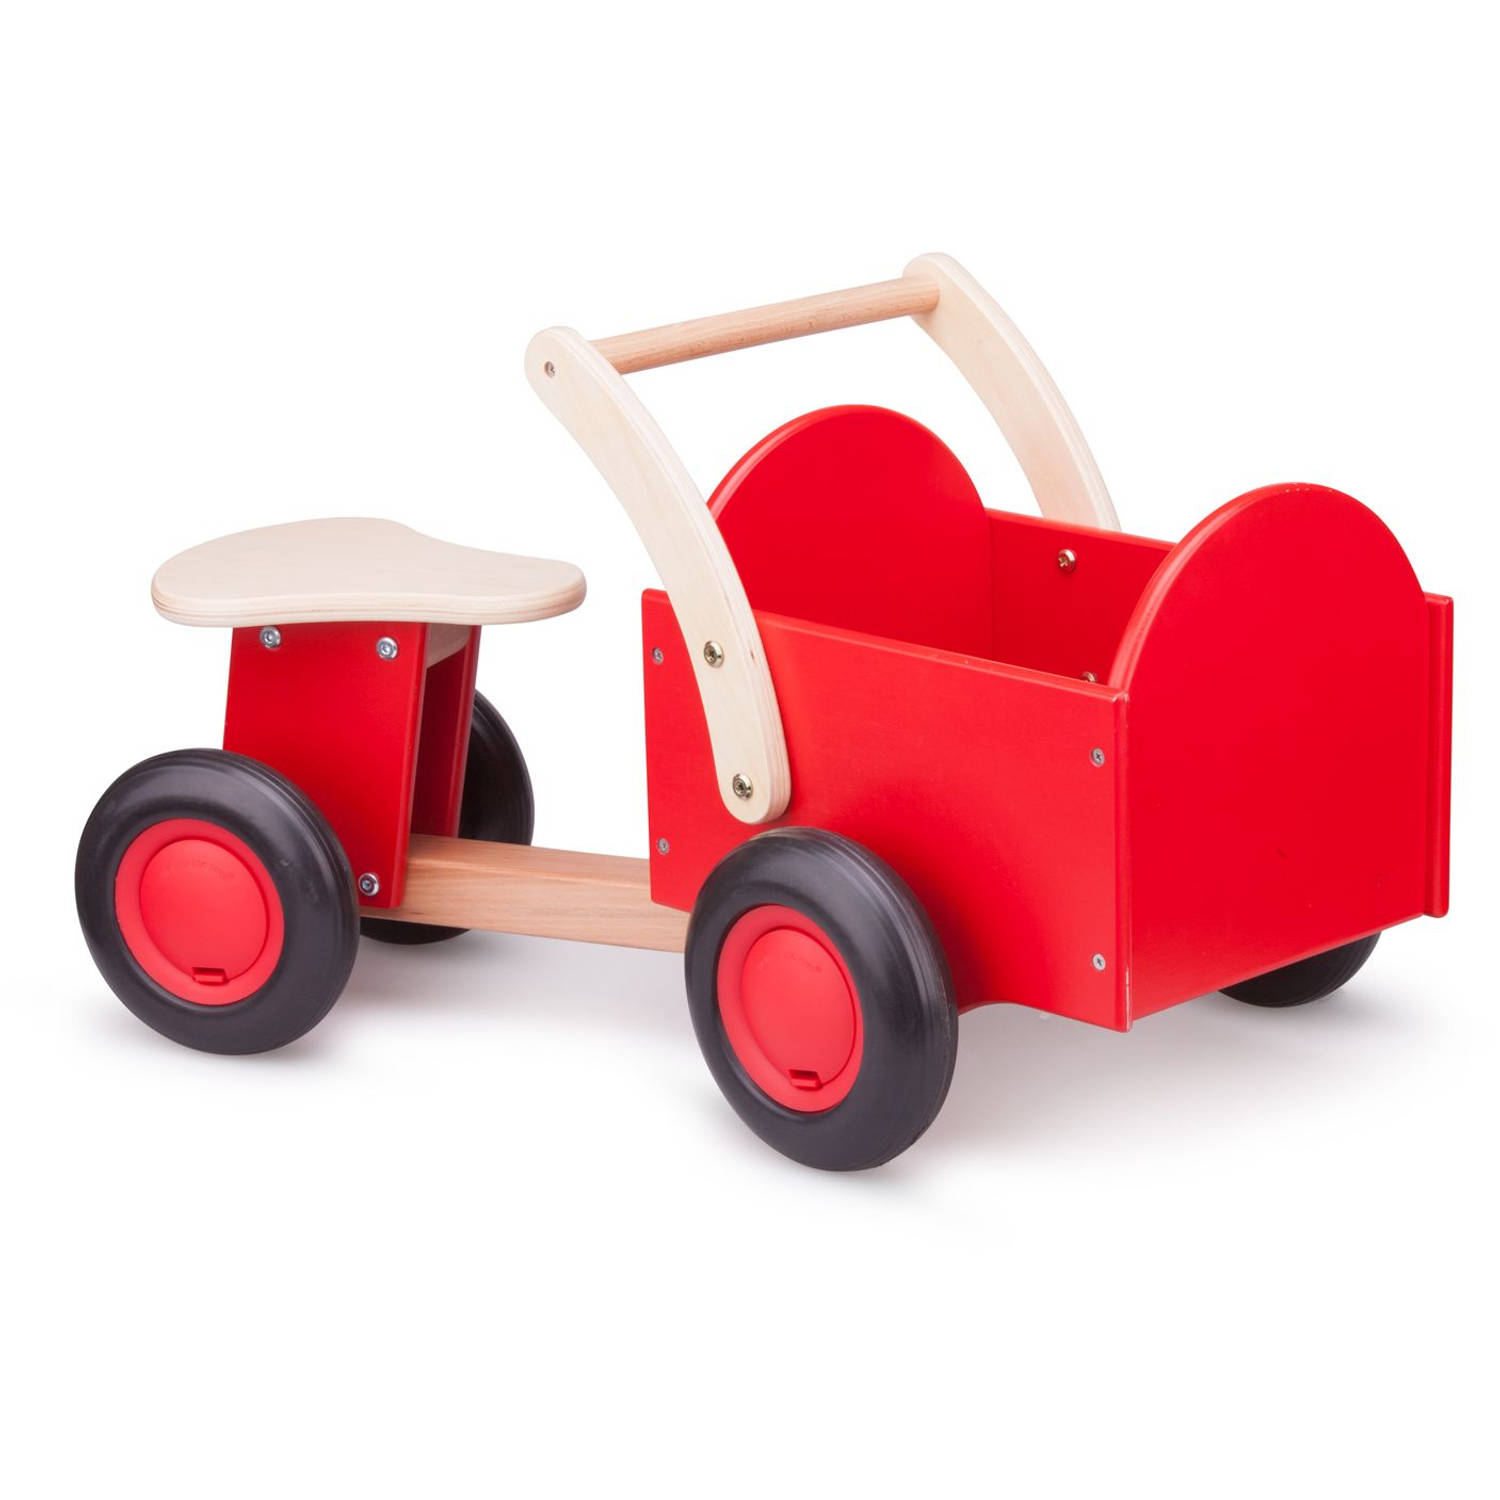 Bakfiets New Classic Toys: Rood-blank 37x63x28 Cm